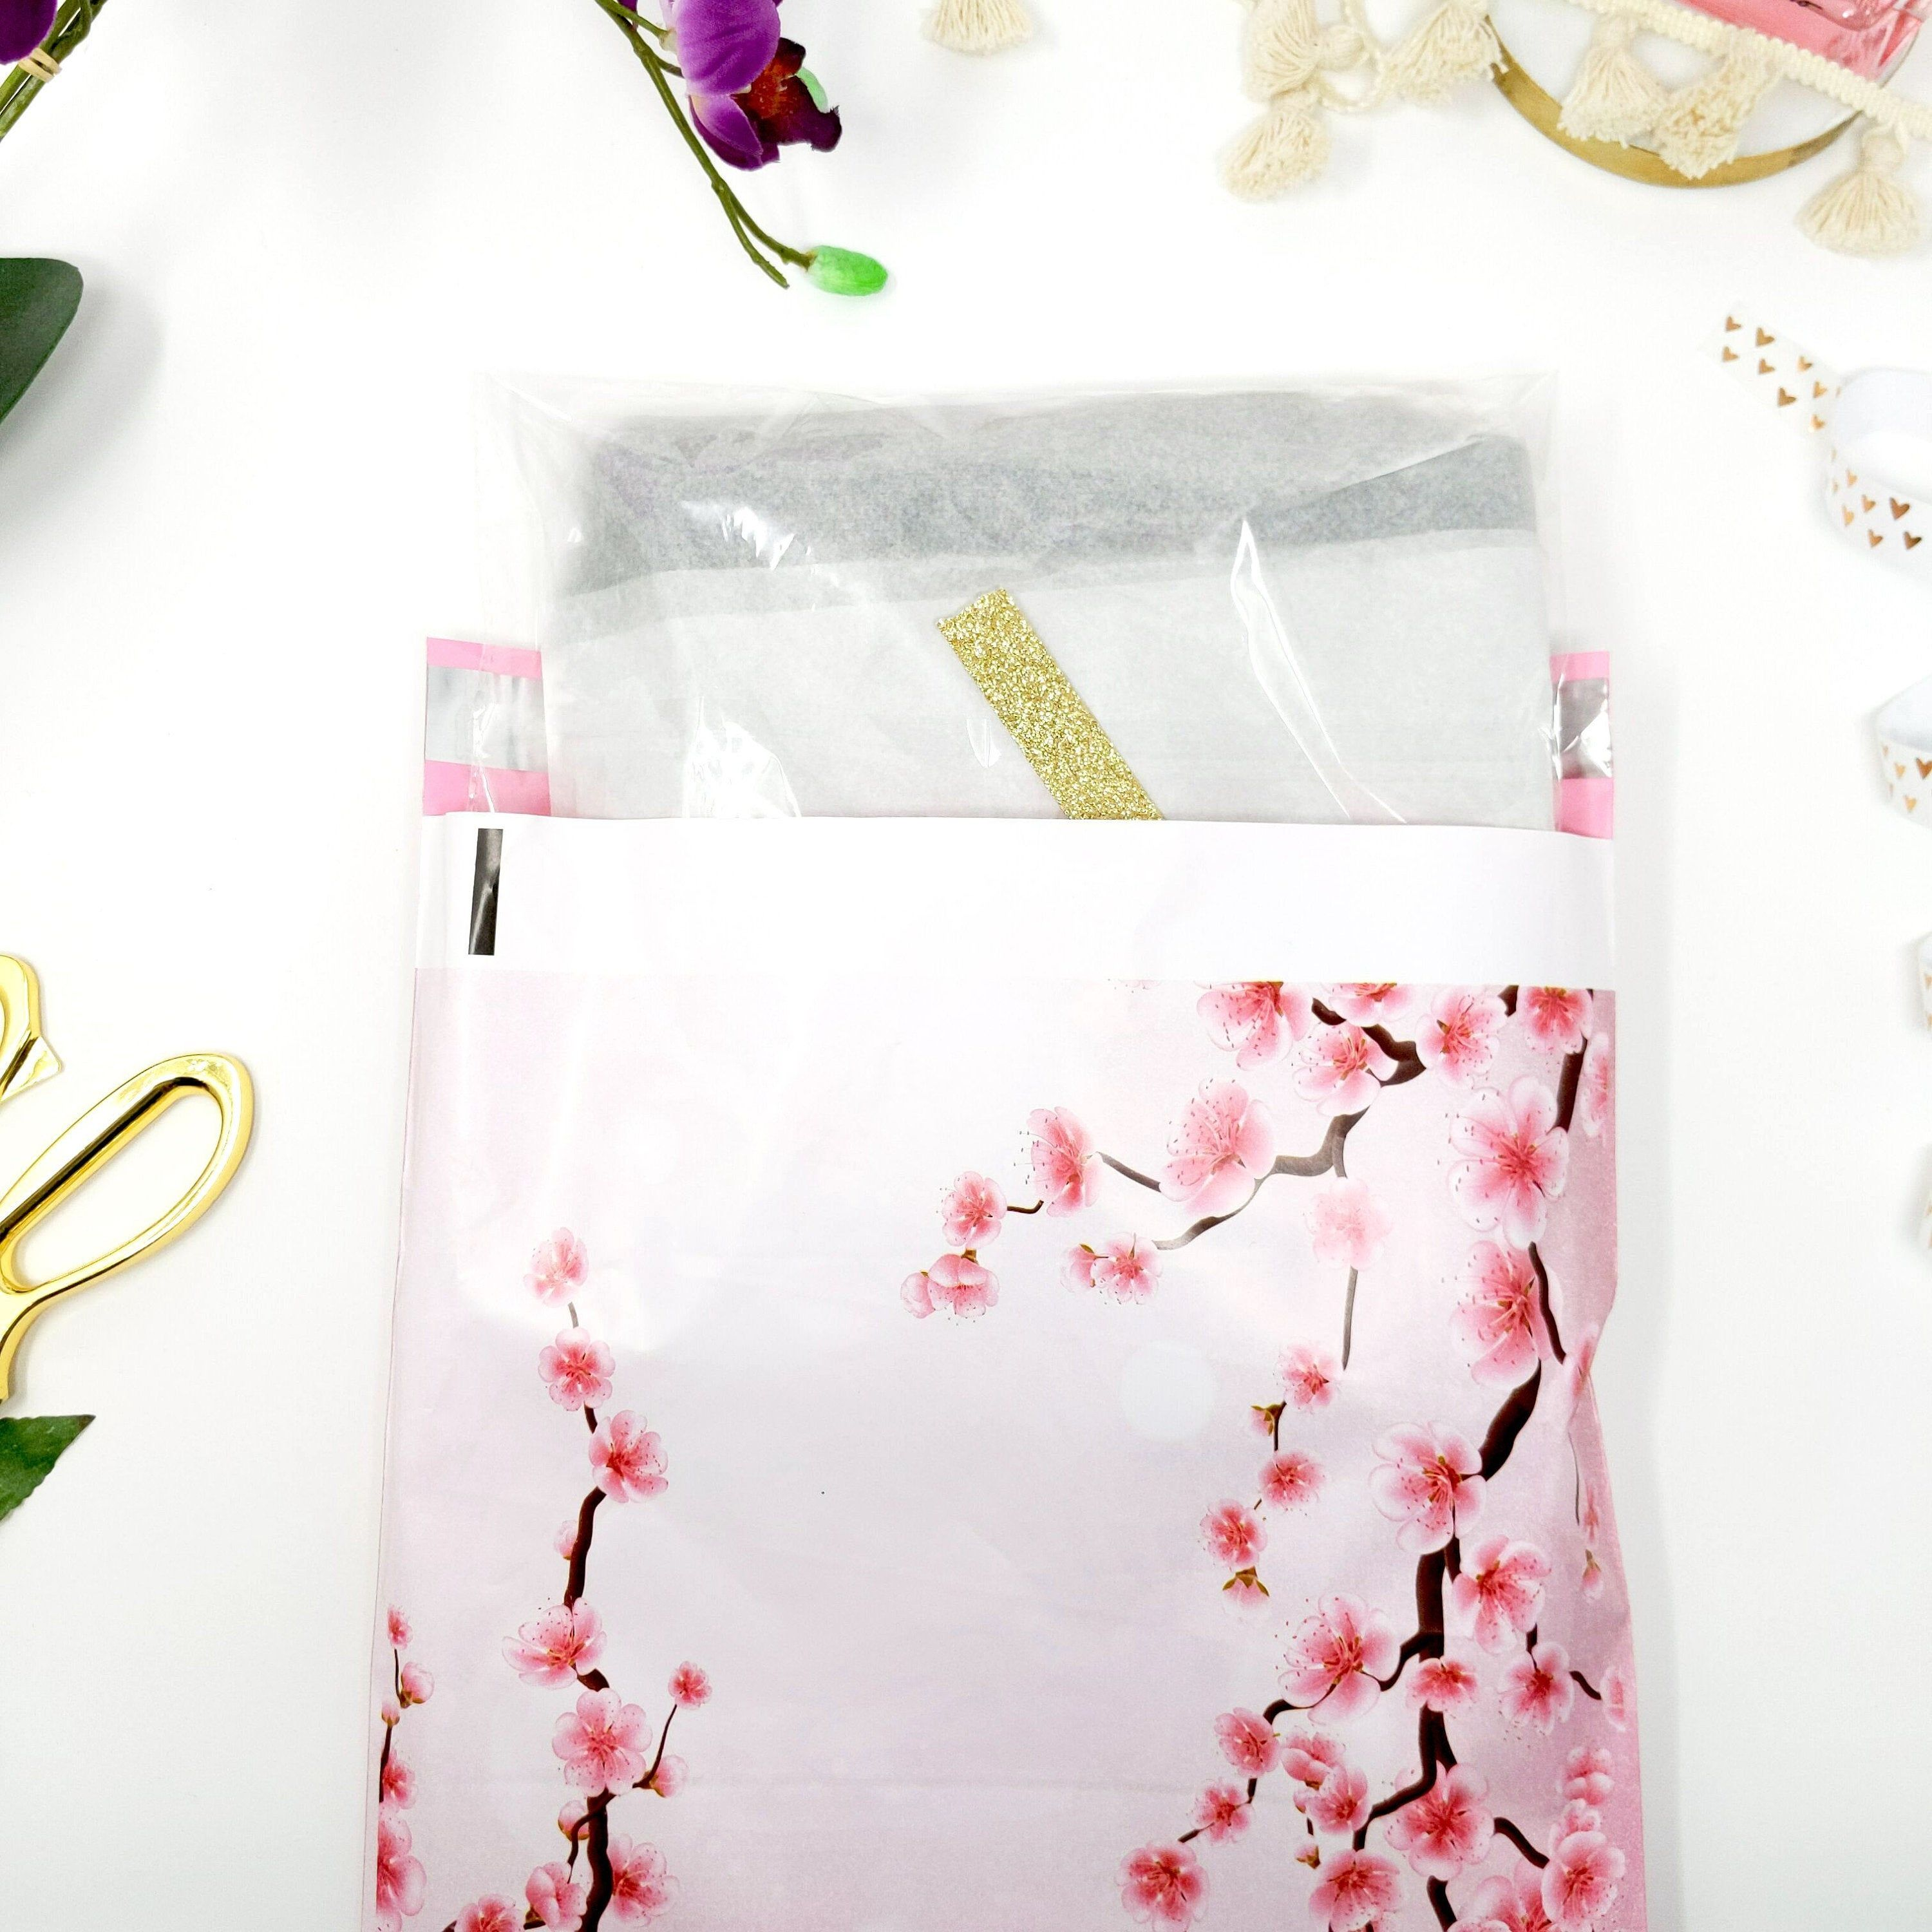 25 8.5x11 Packed with Love from Us to You Pink Dot Poly Bubble Mailers